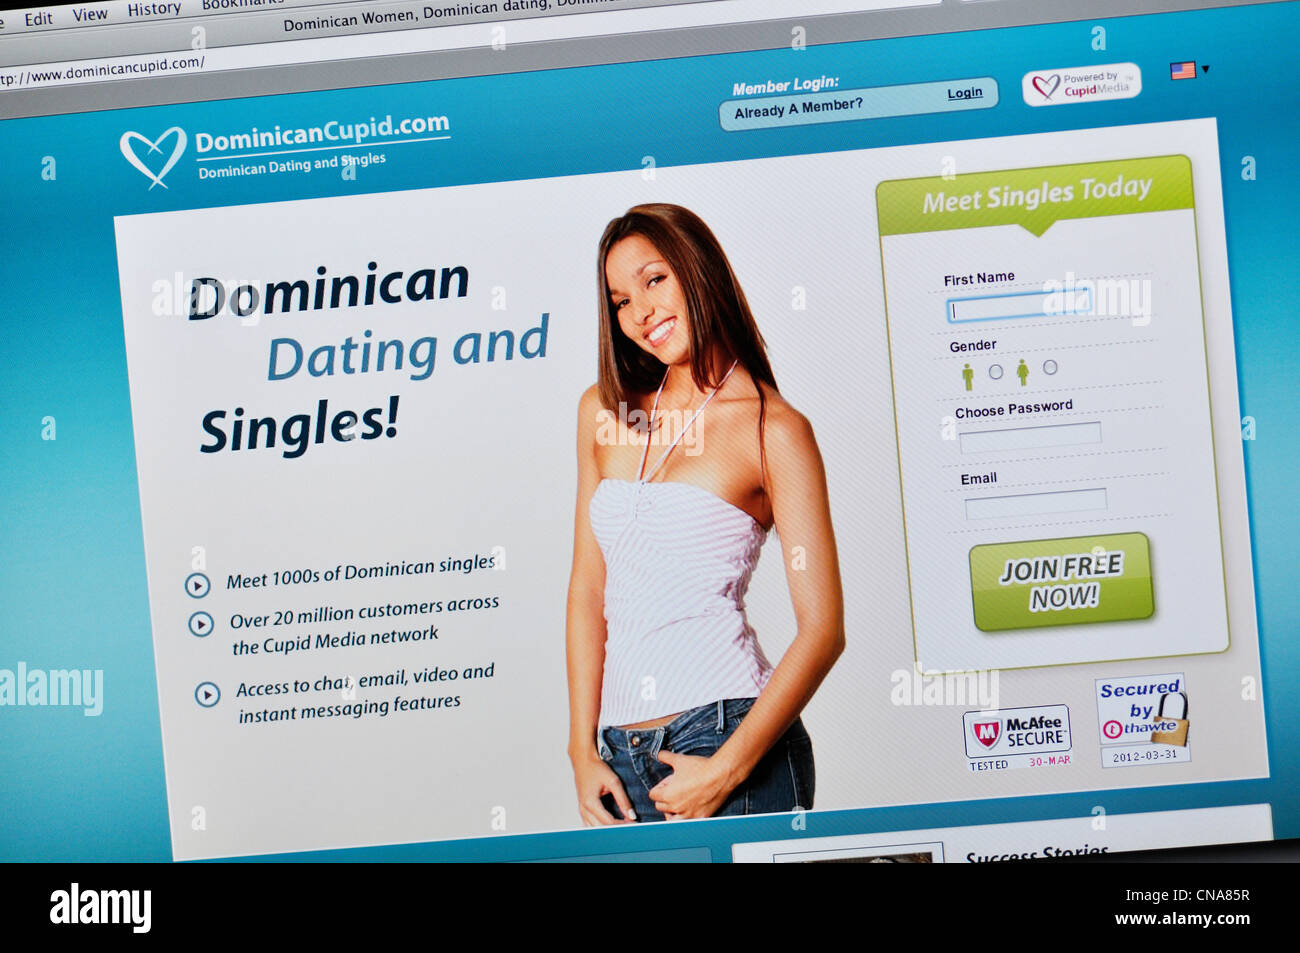 Dominican dating website